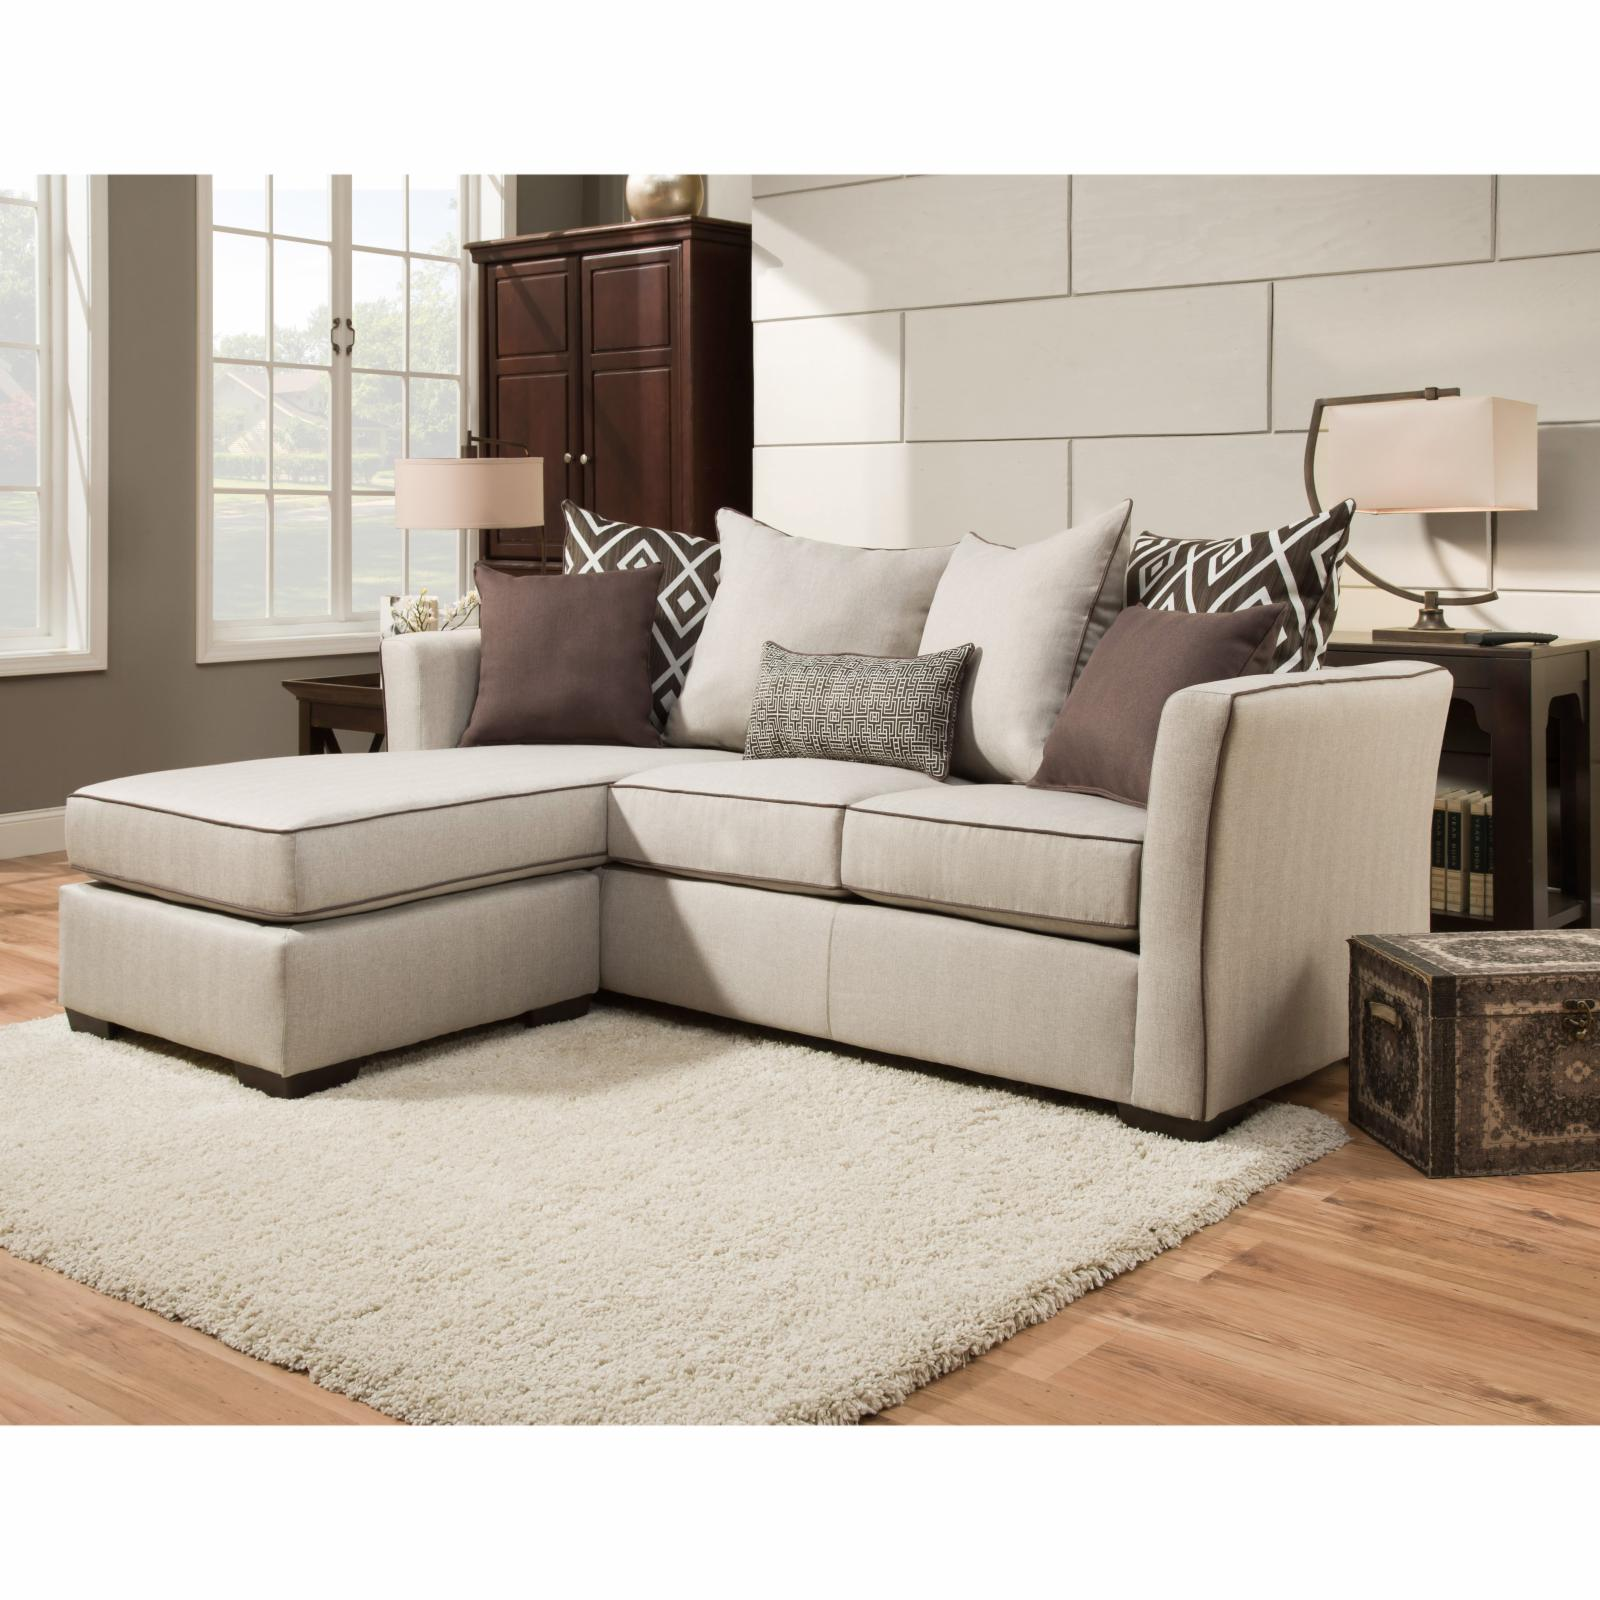 United furniture simmons upholstery stewart sofa with for Simmons sectional sofa with chaise